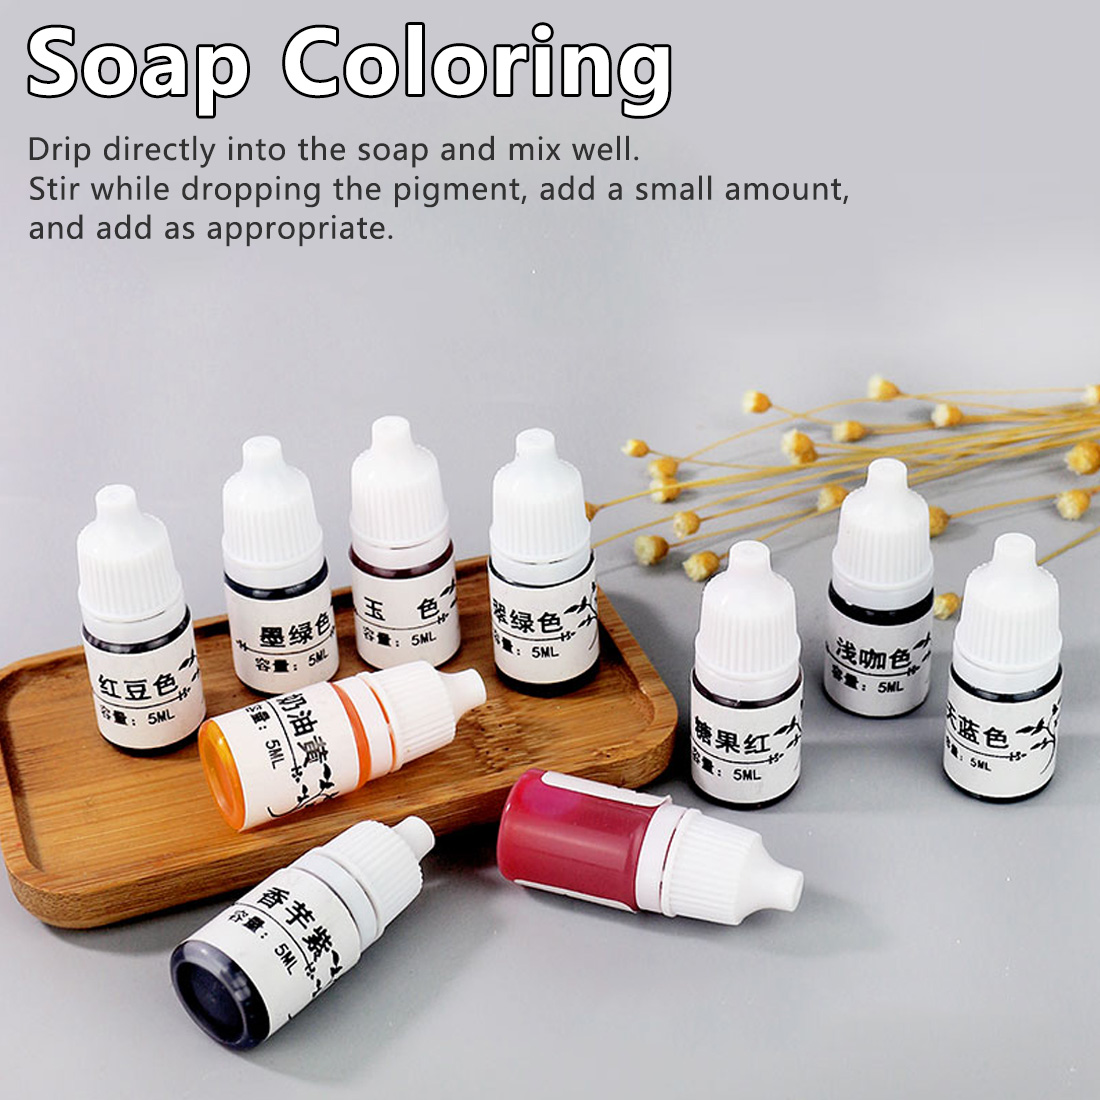 7 Colors 5ml Handmade Soap DYE Pigments Dyestuff Toolkit Handmade Soap-based Materials Color Liquid Pigment